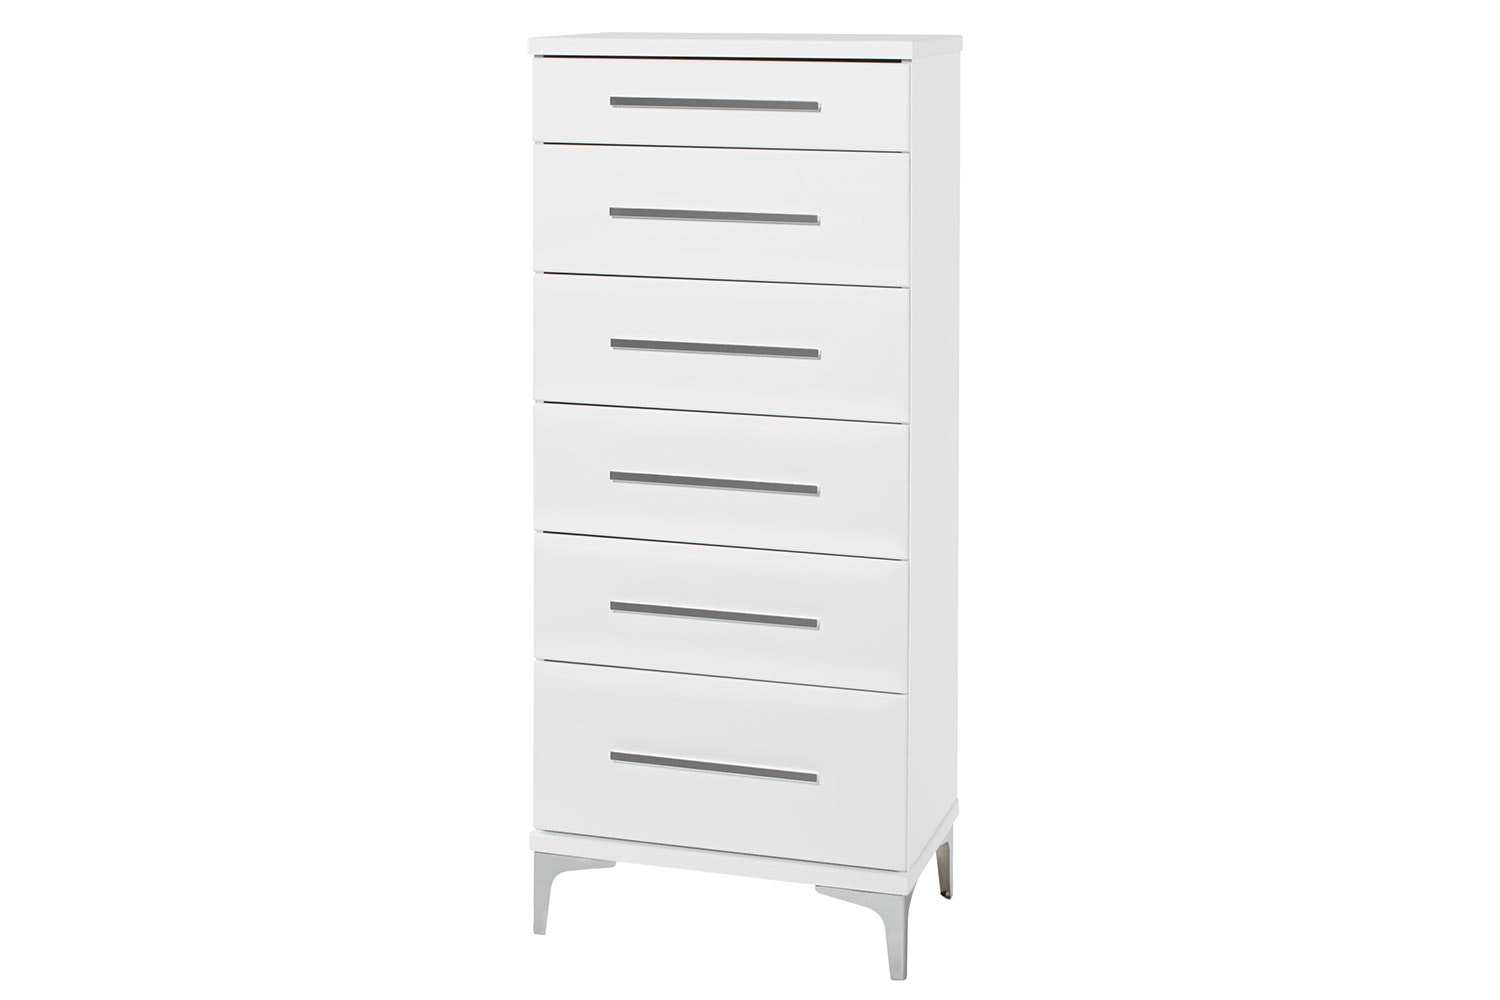 Salento 6 Drawer Slimboy by Compac Furniture - Chrome